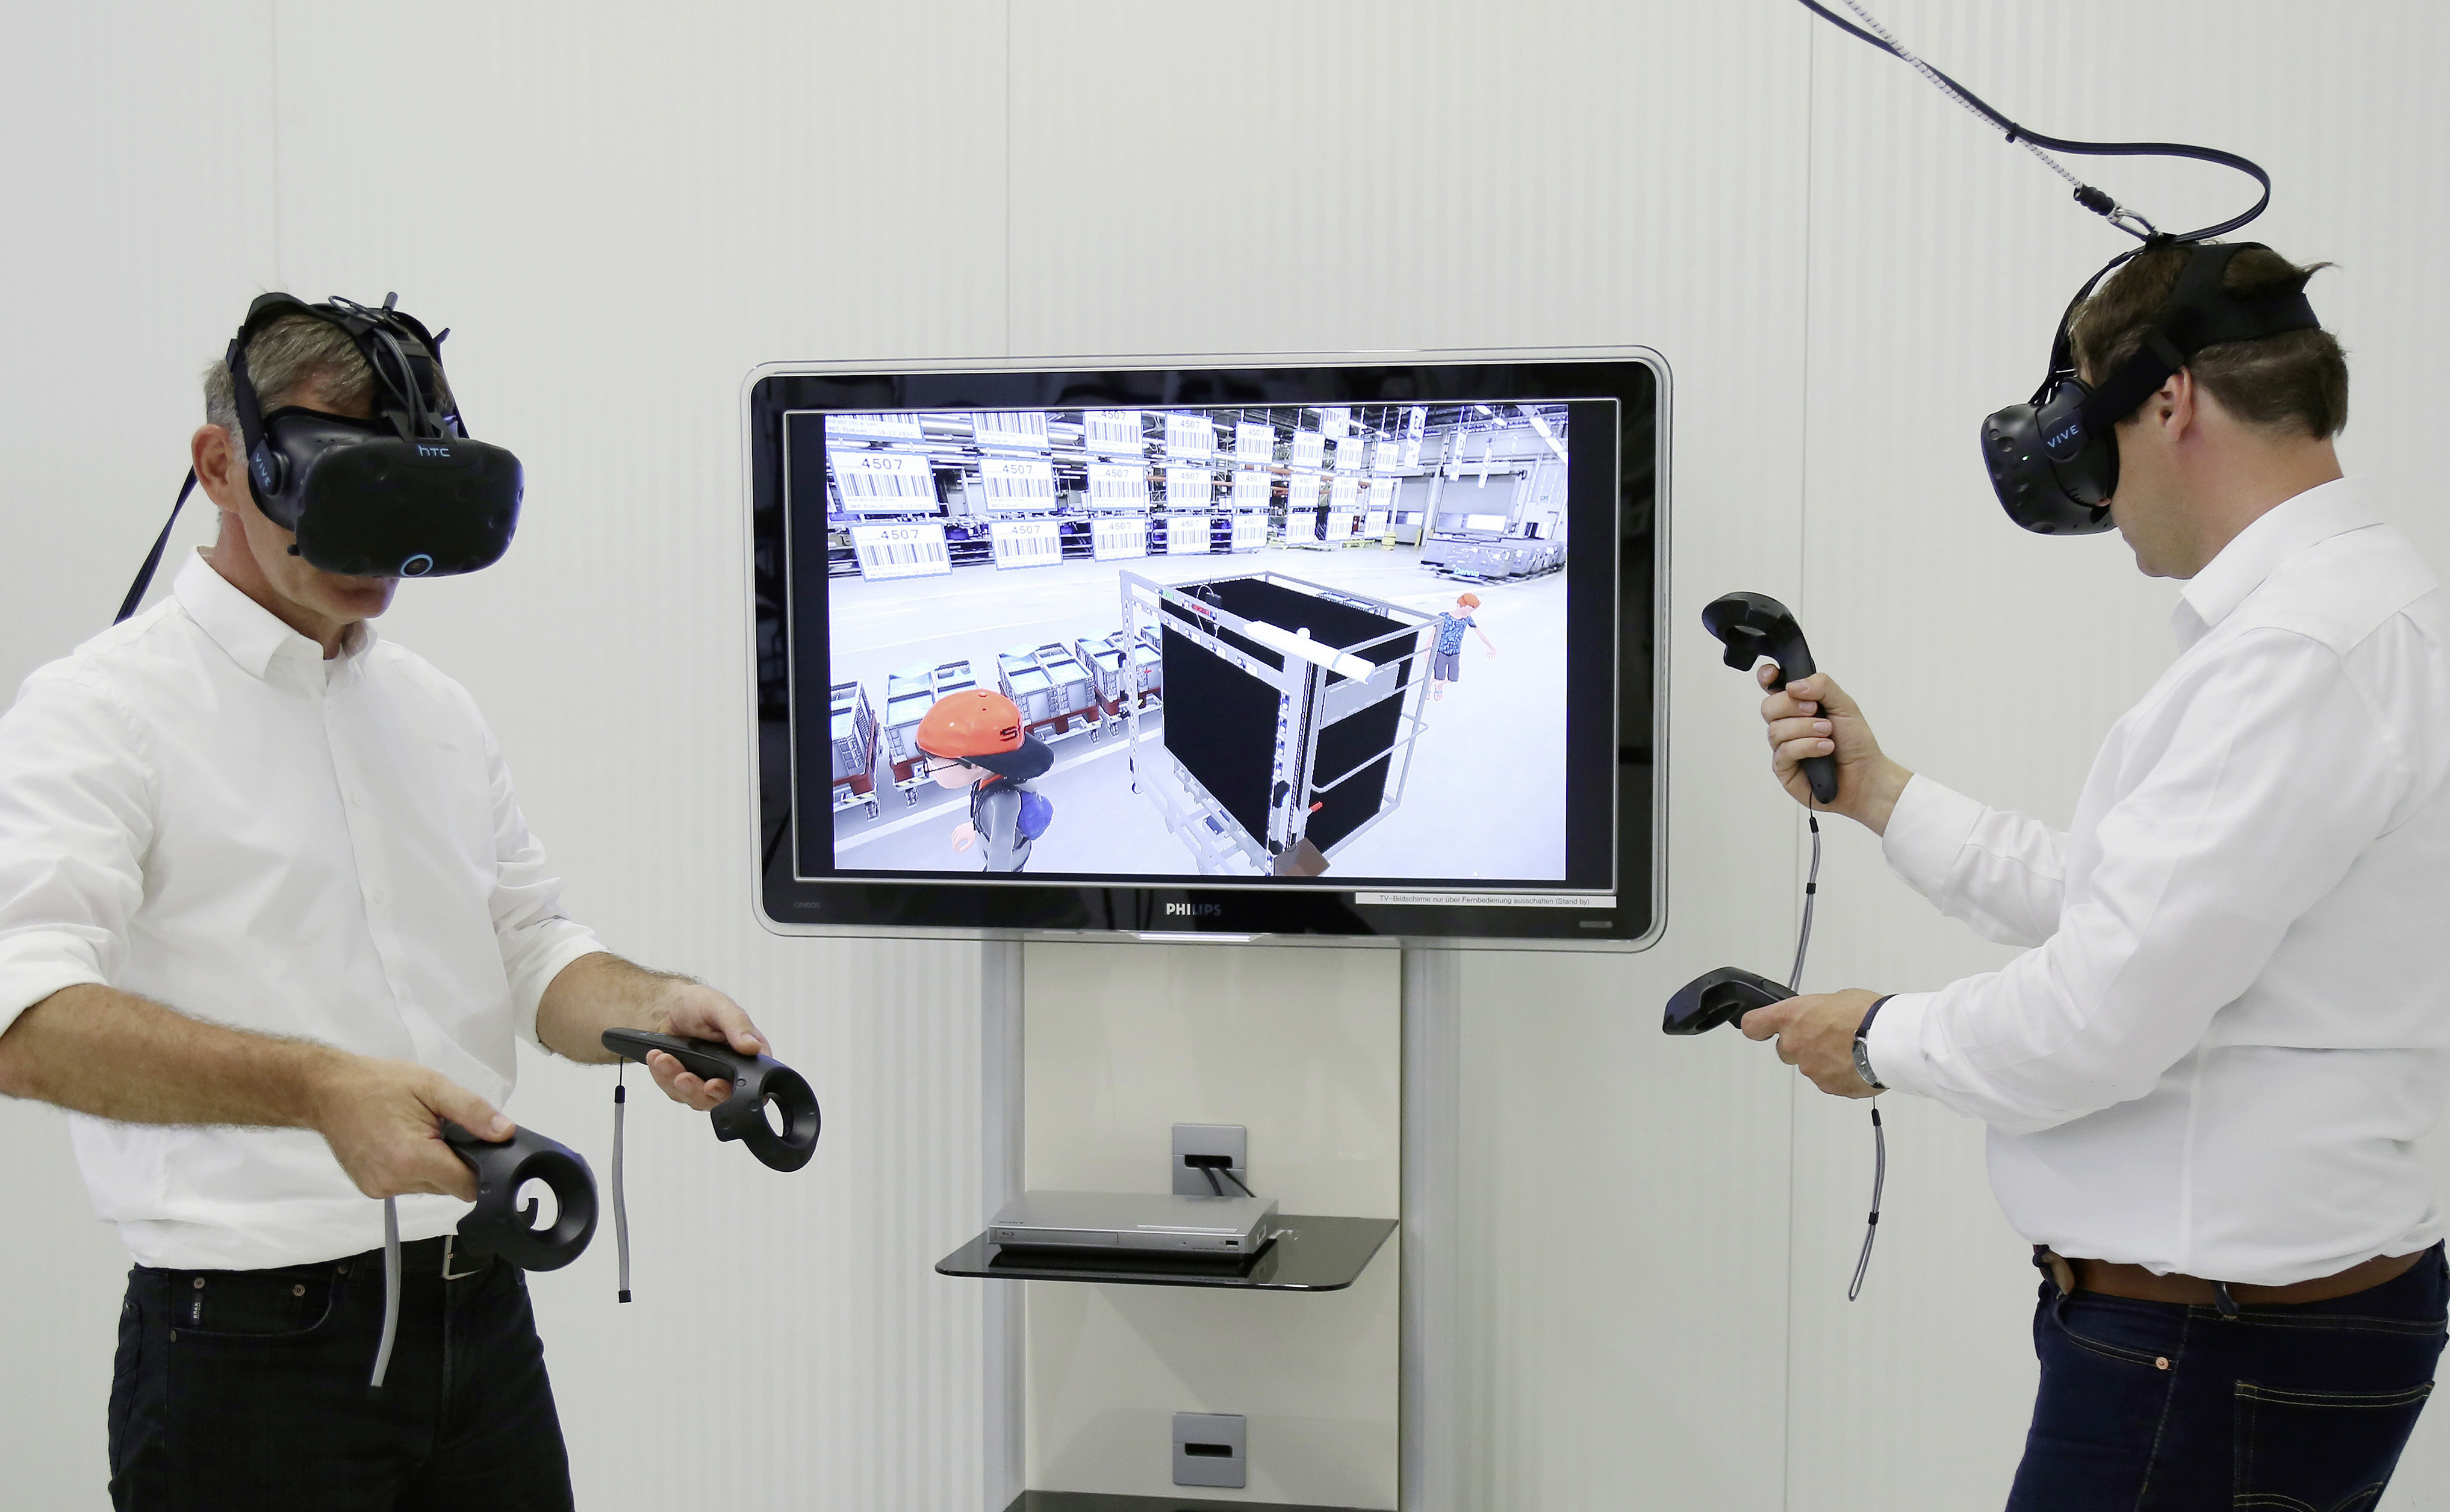 Mathias Synowski, Group Logistics, und Dennis Abmeier, Group IT, testen eine neue Virtual-Reality-Anwendung für Produktion & Logistik im Volkswagen Konzern.